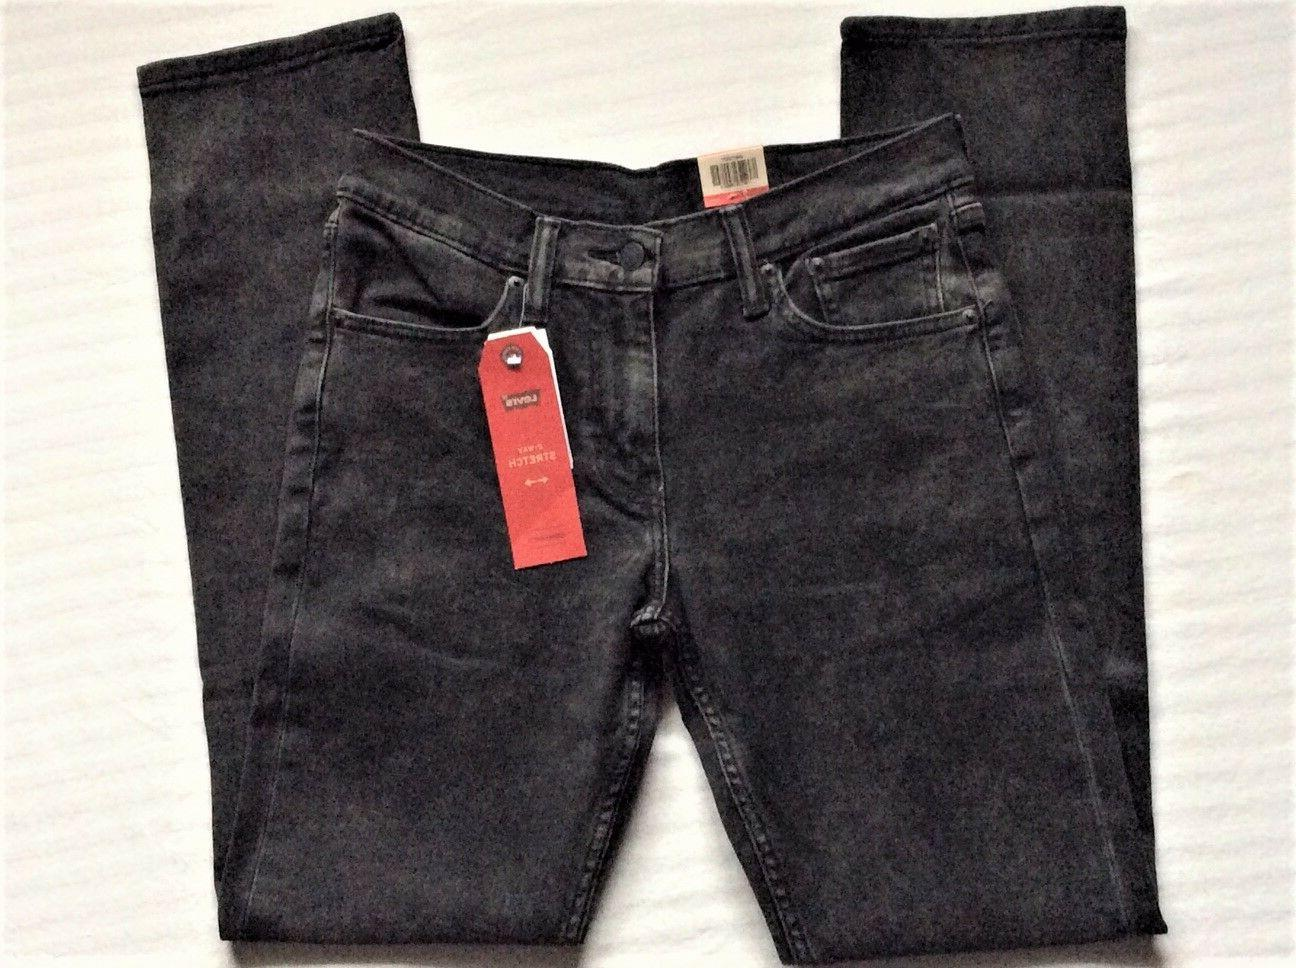 Levi's Men's 2377 Black Acid Slim Stretch Jeans